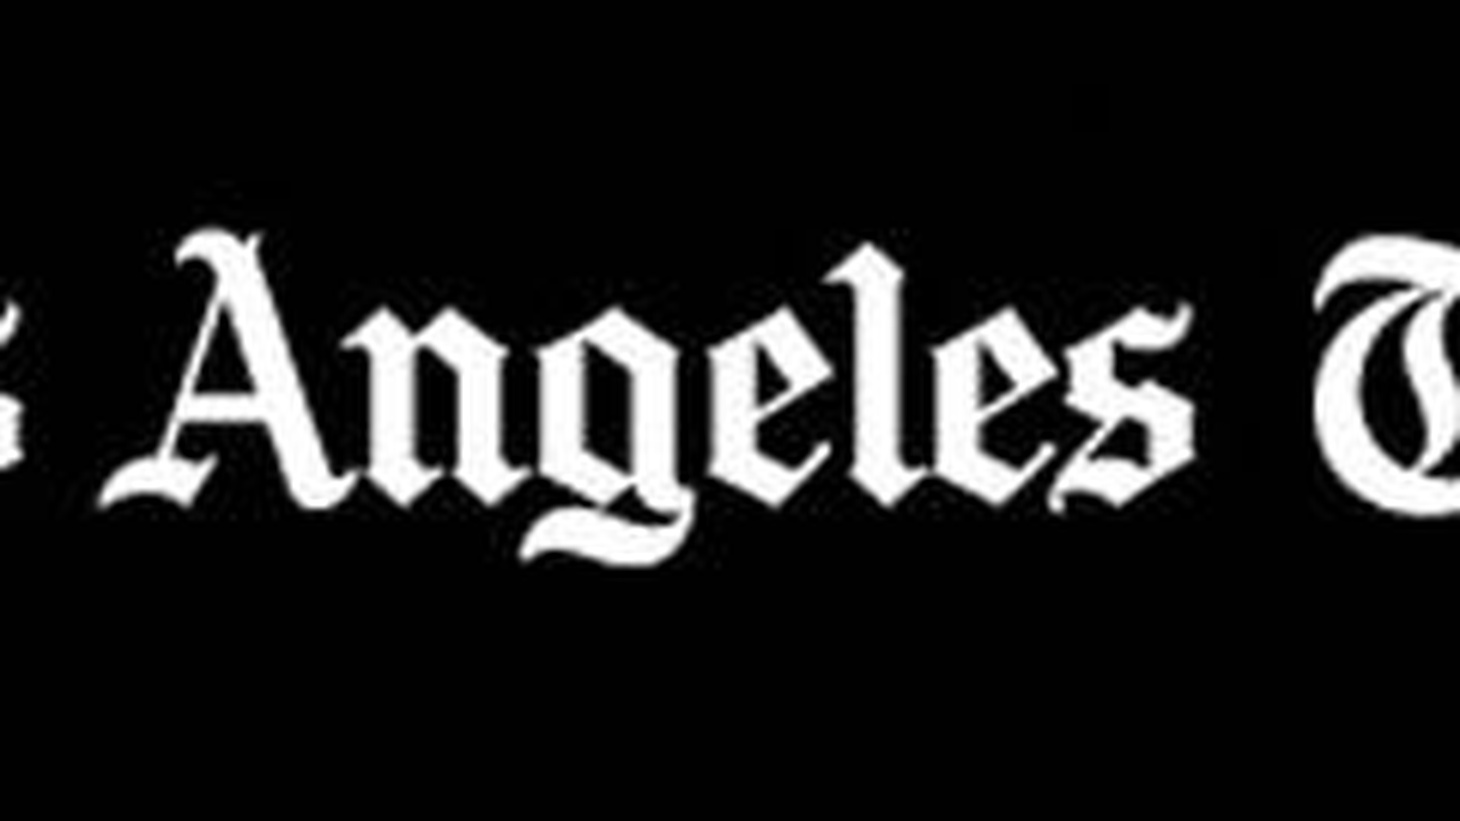 Since the Chandler family sold out to the Chicago Tribune, the LA Times newsroom has become smaller and smaller. So has the coverage. Now the new owner, Sam Zell, needs to service big debt and 150 more editorial employees will be on the chopping block. Tonight, can the Times survive? Can LA survive without it?